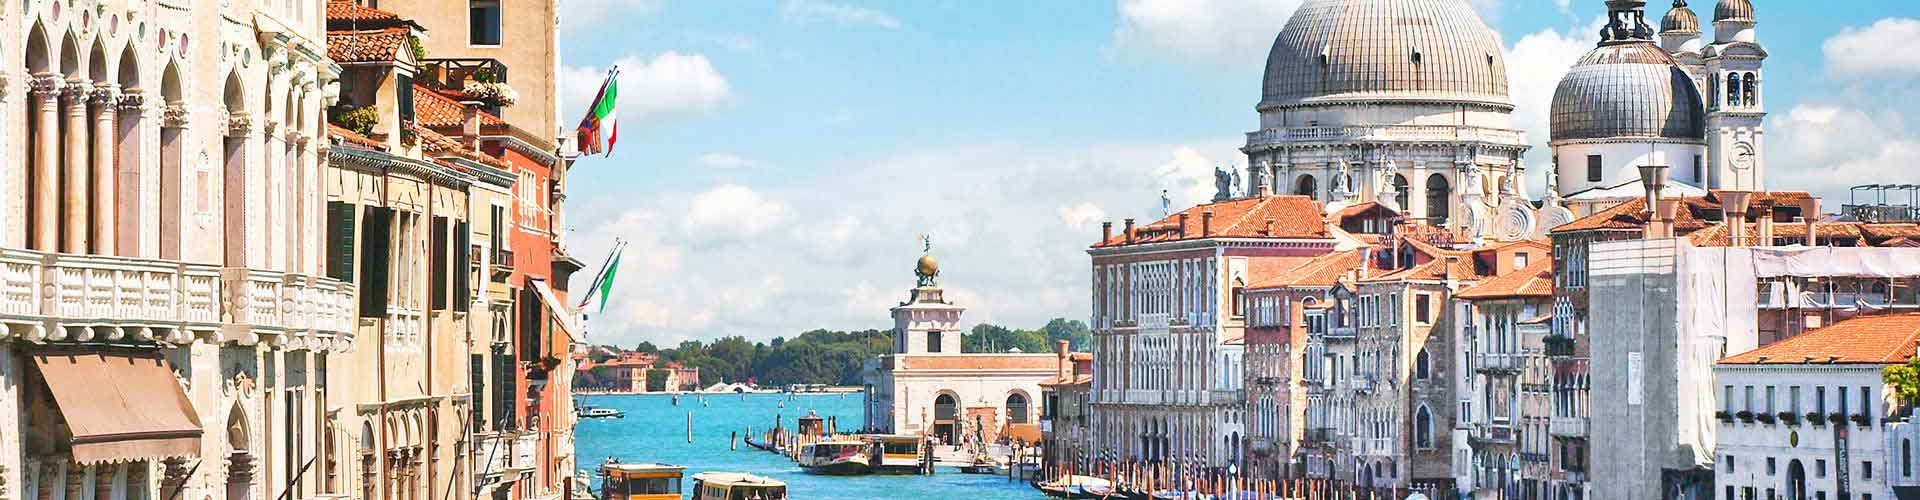 Venice – Bed and breakfast in Venice. Maps of Italy, photos and reviews for each Bed and breakfast in Venice.